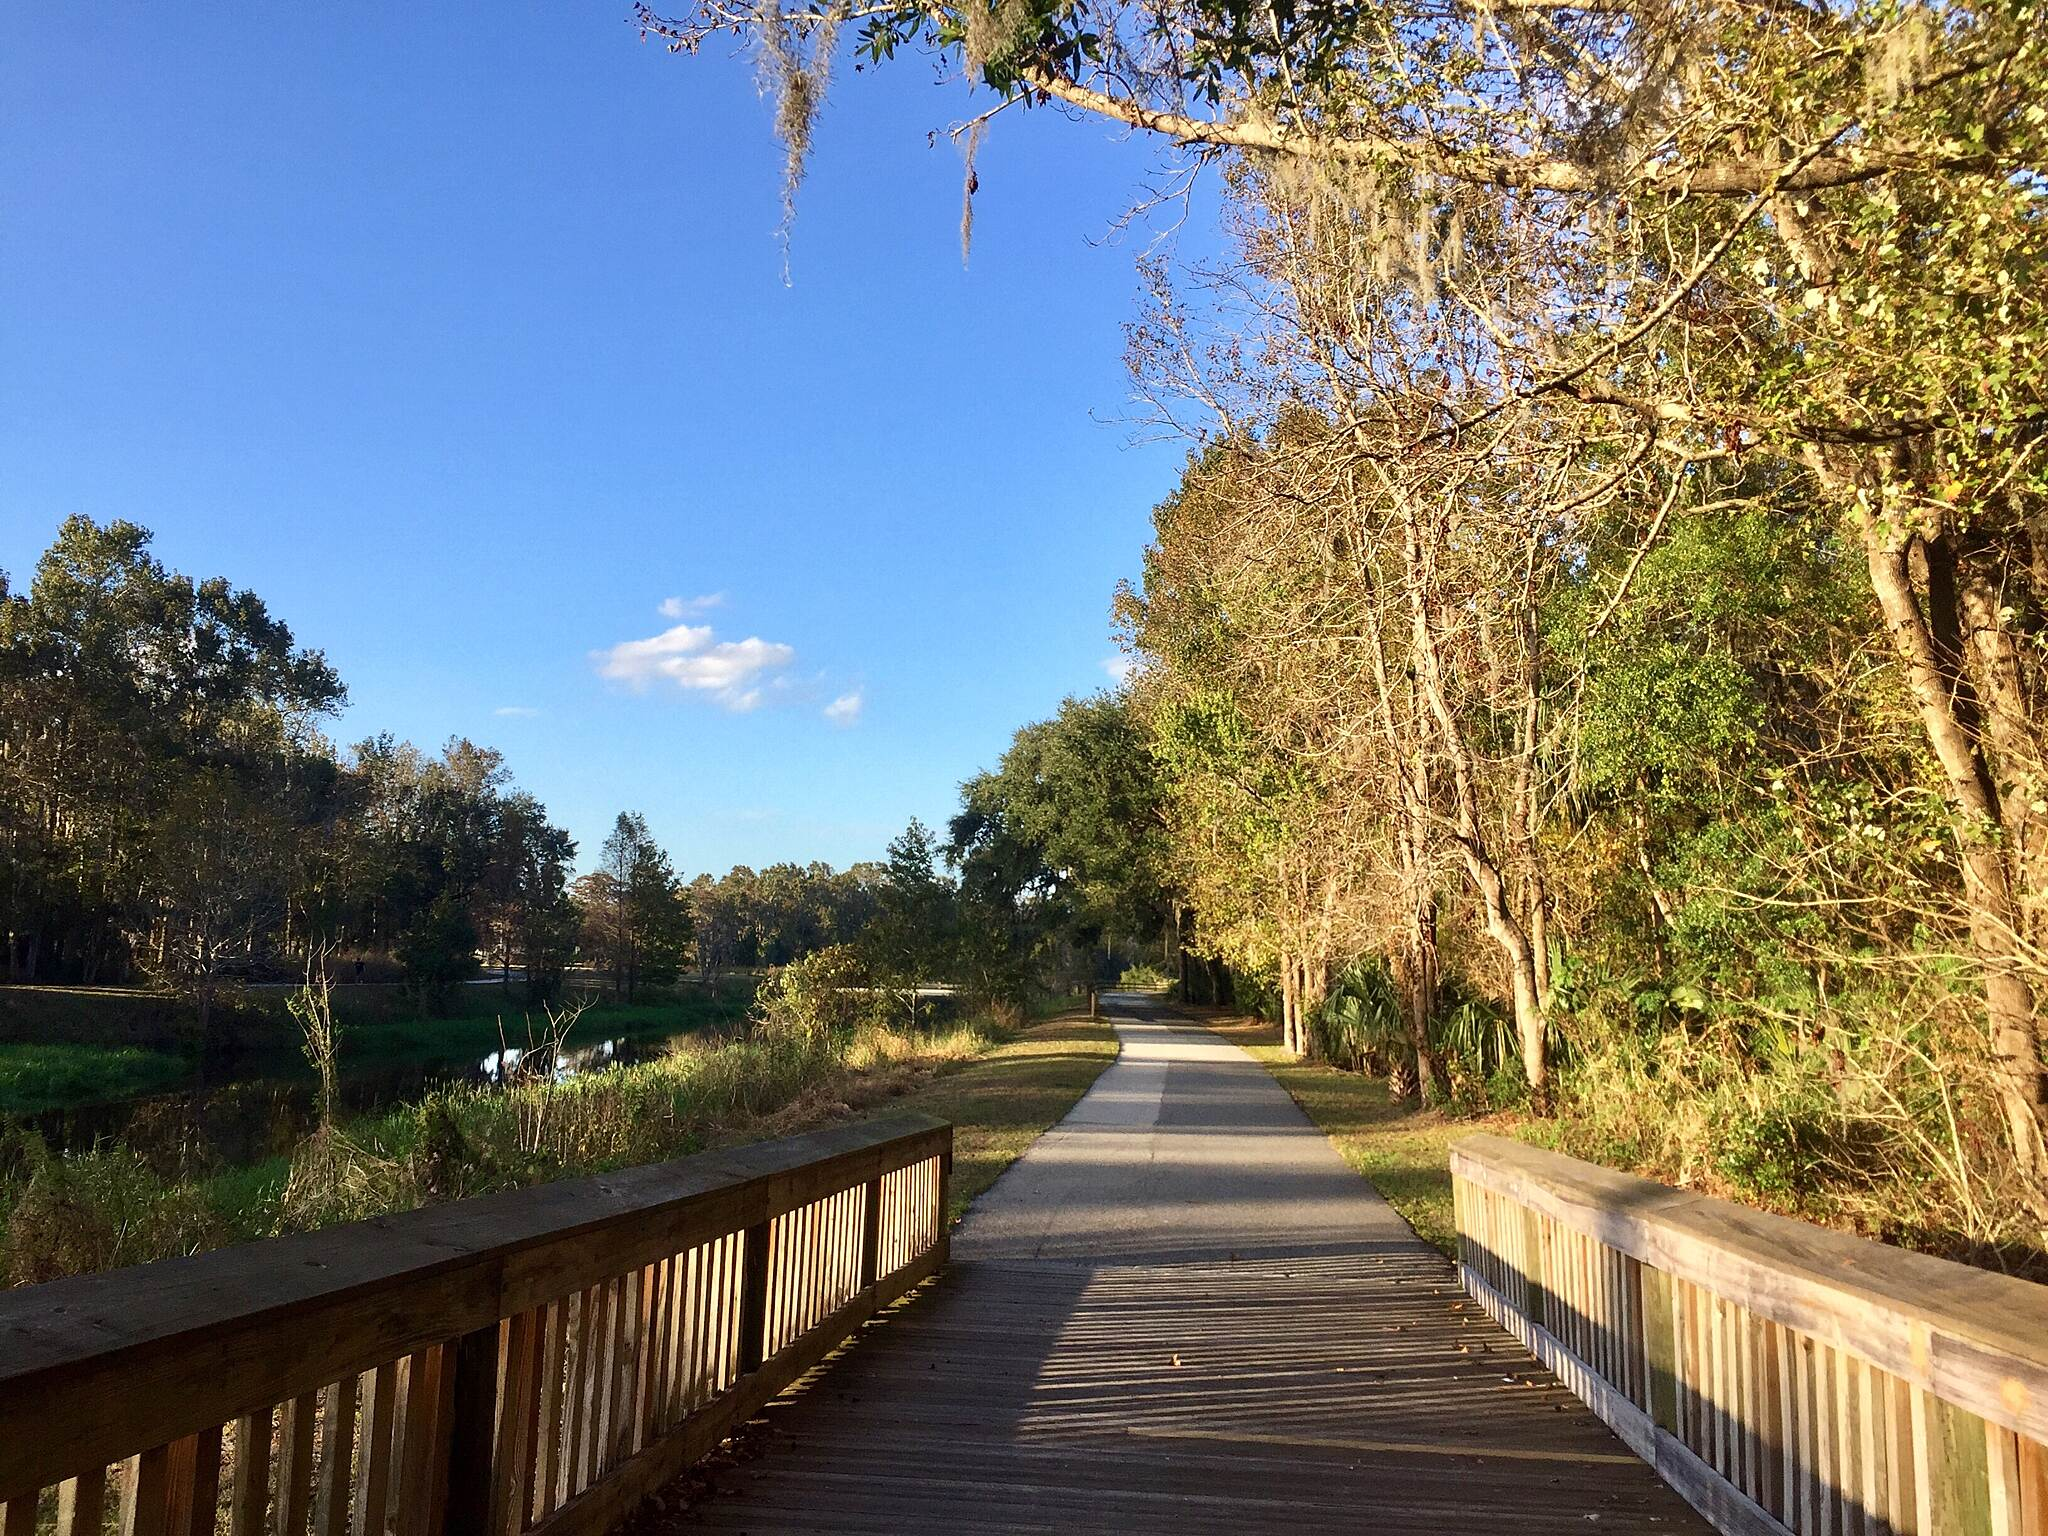 Little Econ Greenway Skating Little ECON Trail - Orlando https://youtu.be/Bs2DxRgzZ_A